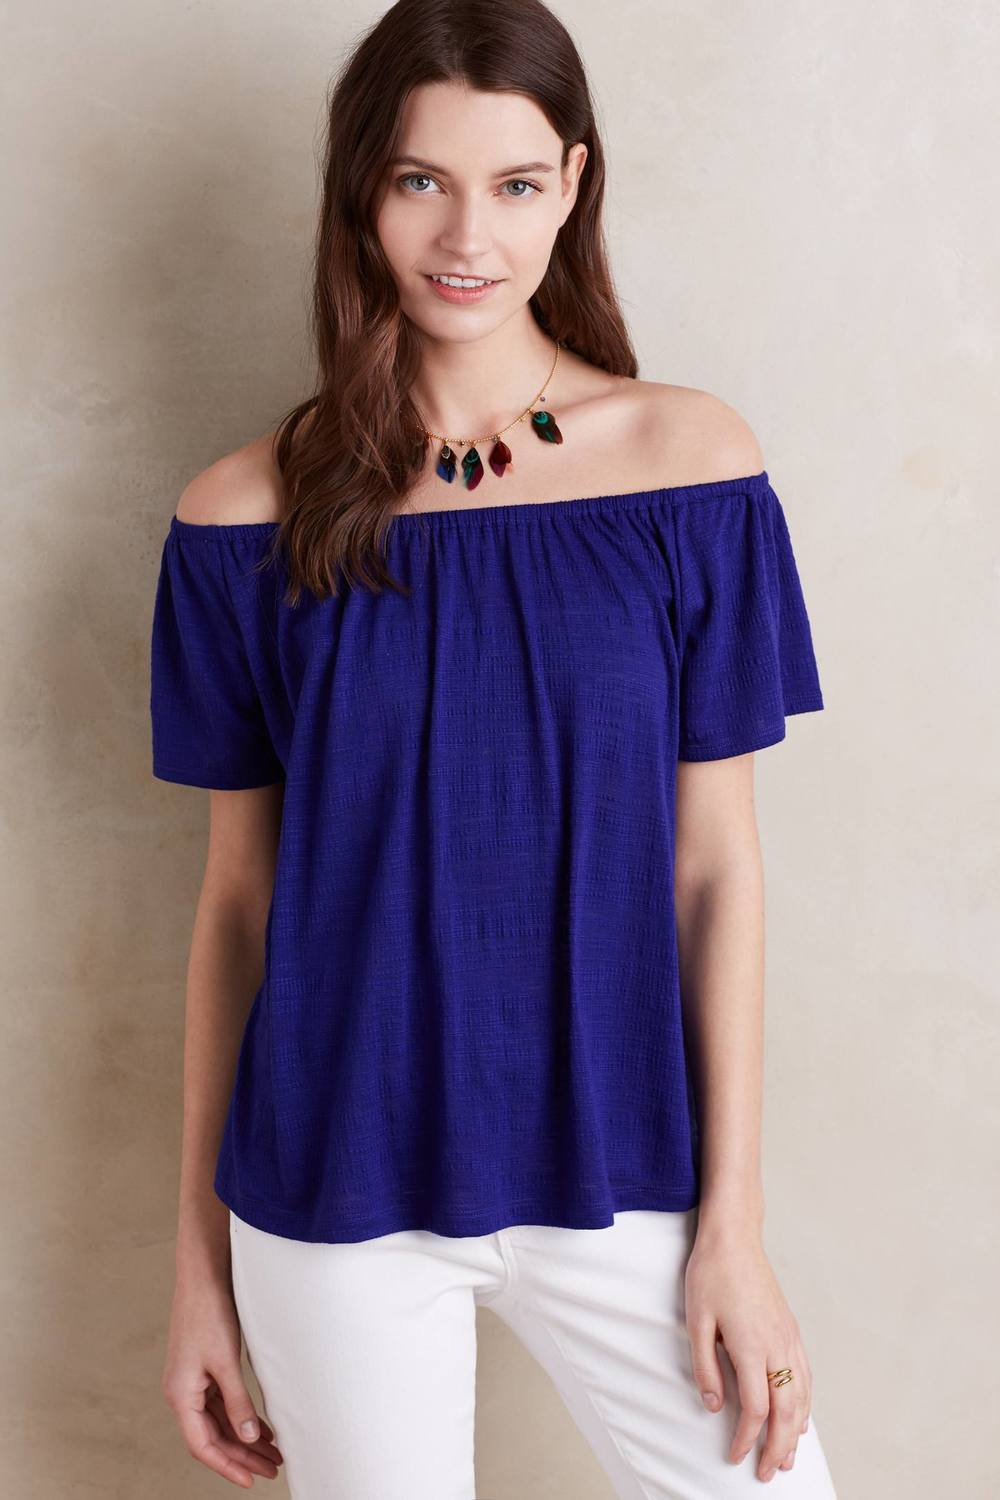 Edda Off the Shoulder Tee. Available in purple, white. Anthropologie. $68.